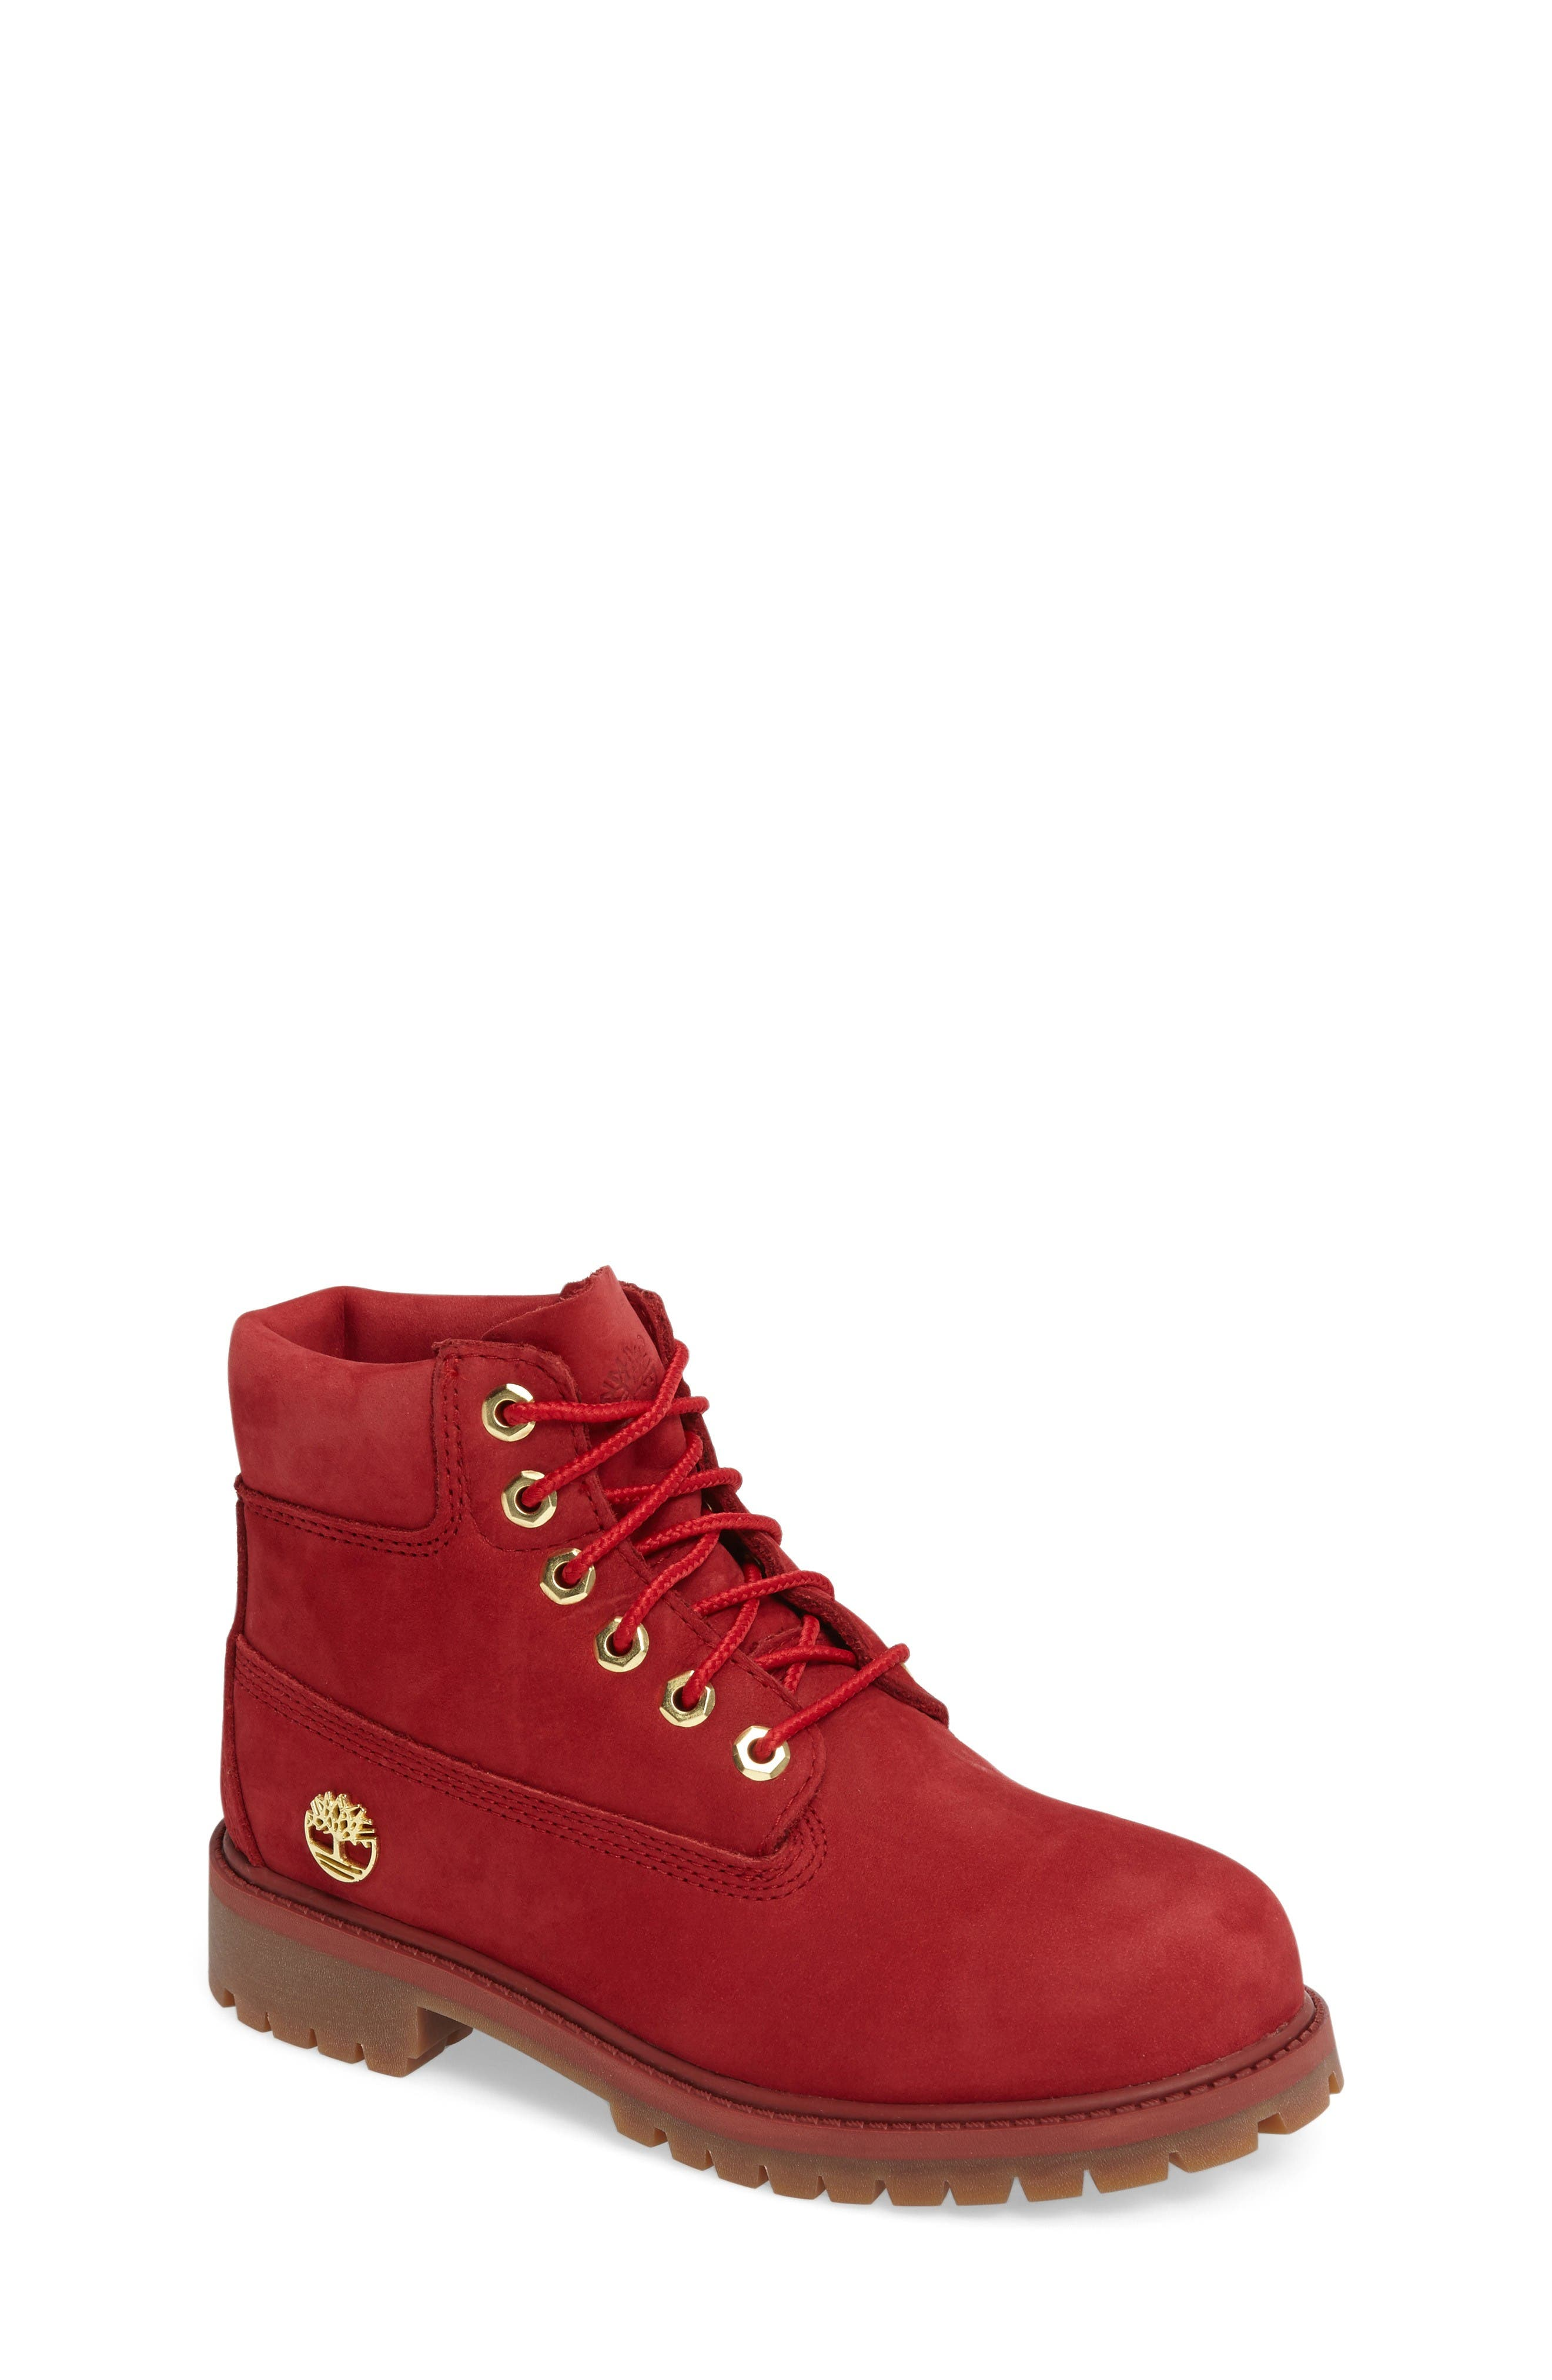 40th Anniversary Ruby Red Waterproof Boot,                             Main thumbnail 1, color,                             Ruby Red Waterbuck